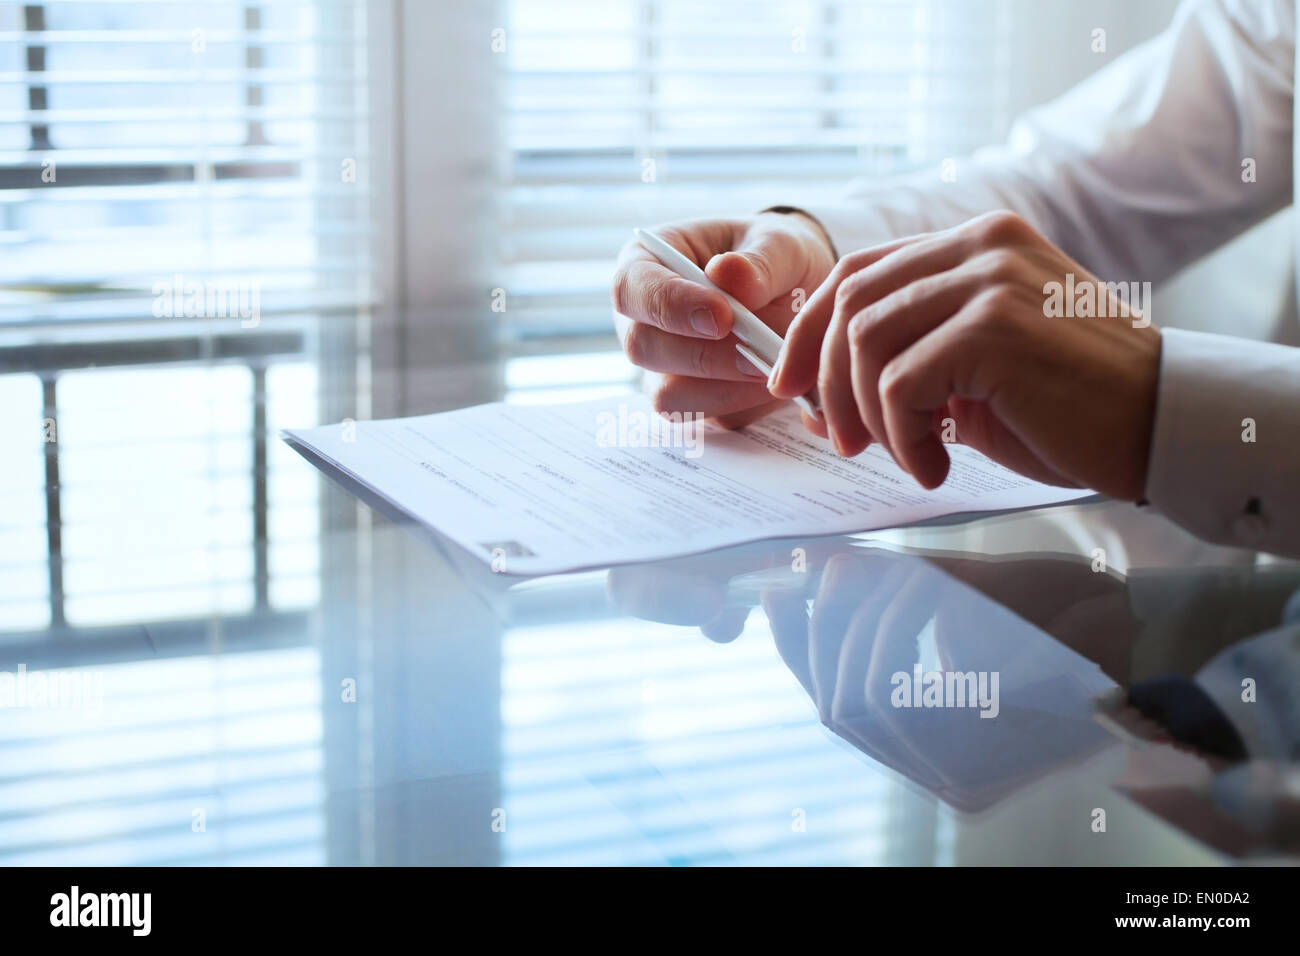 business man before signing contract - Stock Image